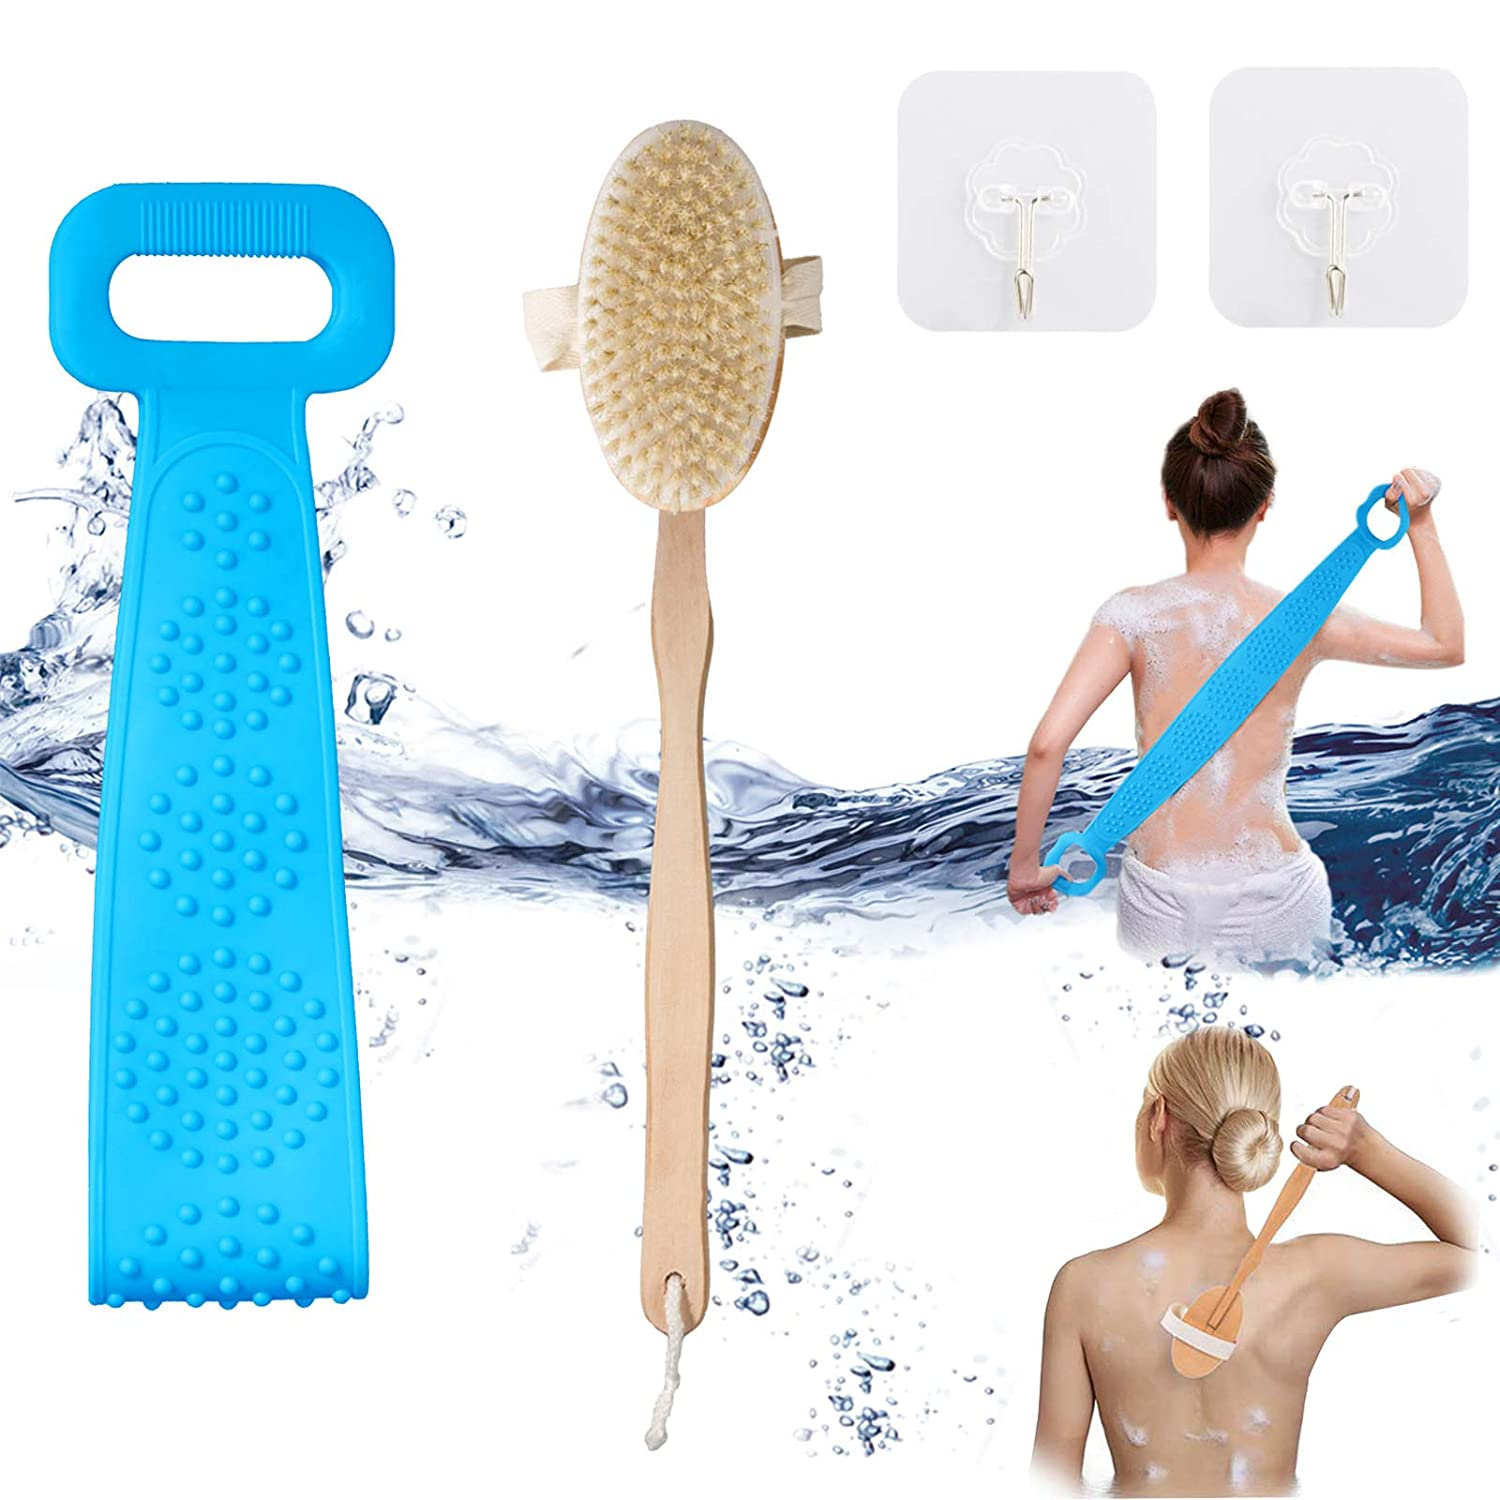 Bath Body Brush&Silicone Back Scrubber for Dry or Wet Brushing, Exfoliating with 100% Nature Horsehair, Detachable Long Handle with Non-Slip Hemp Rope Shower Brush for Man Woman Clean the Body (Blue)